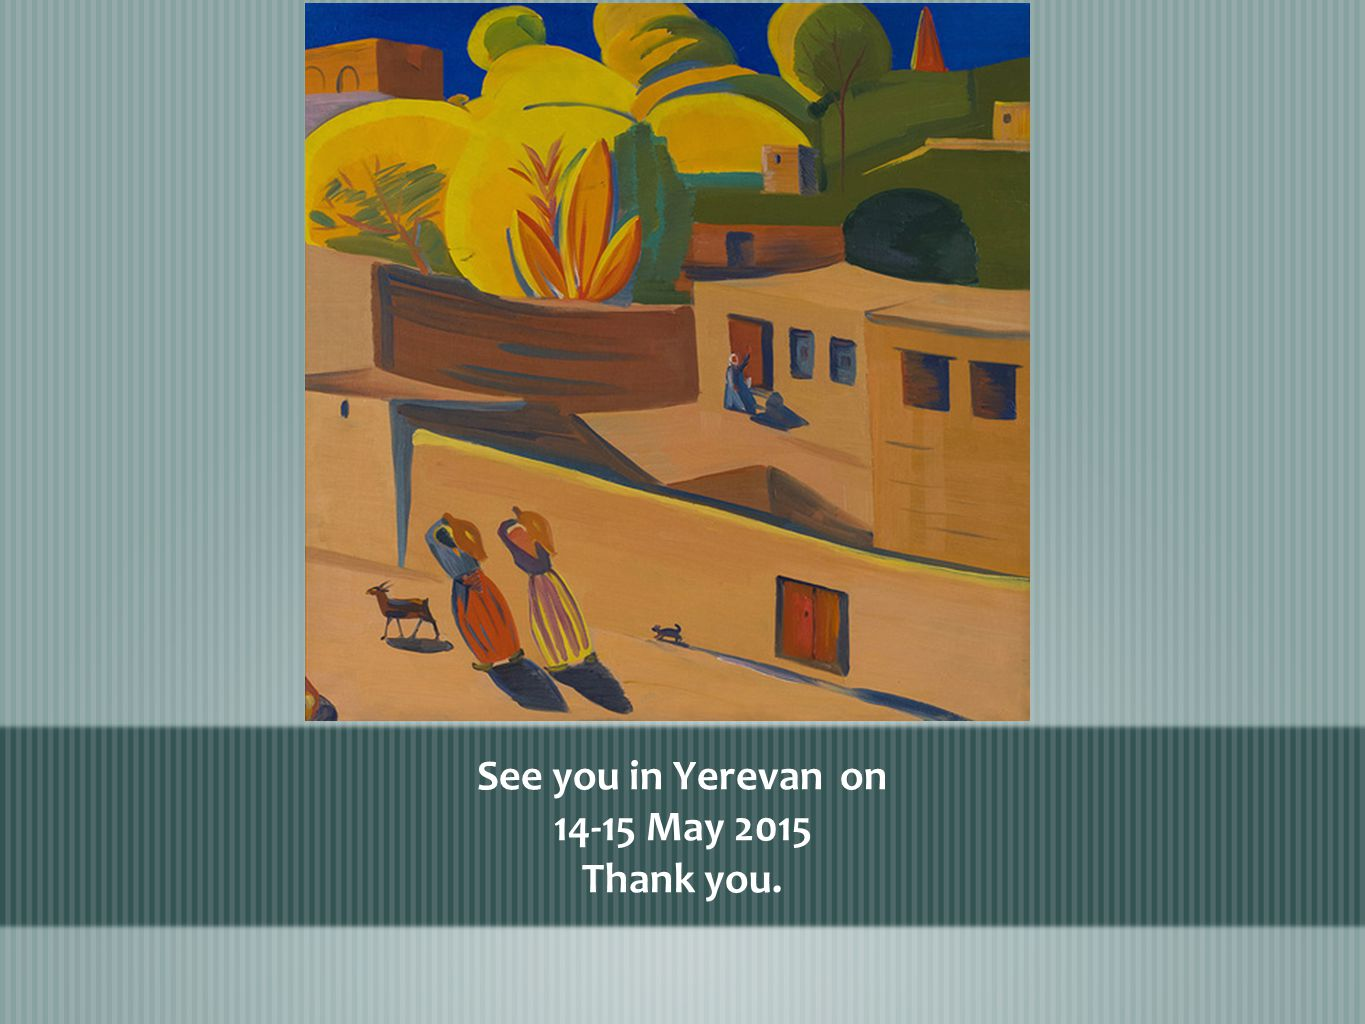 See you in Yerevan on 14-15 May 2015 Thank you.